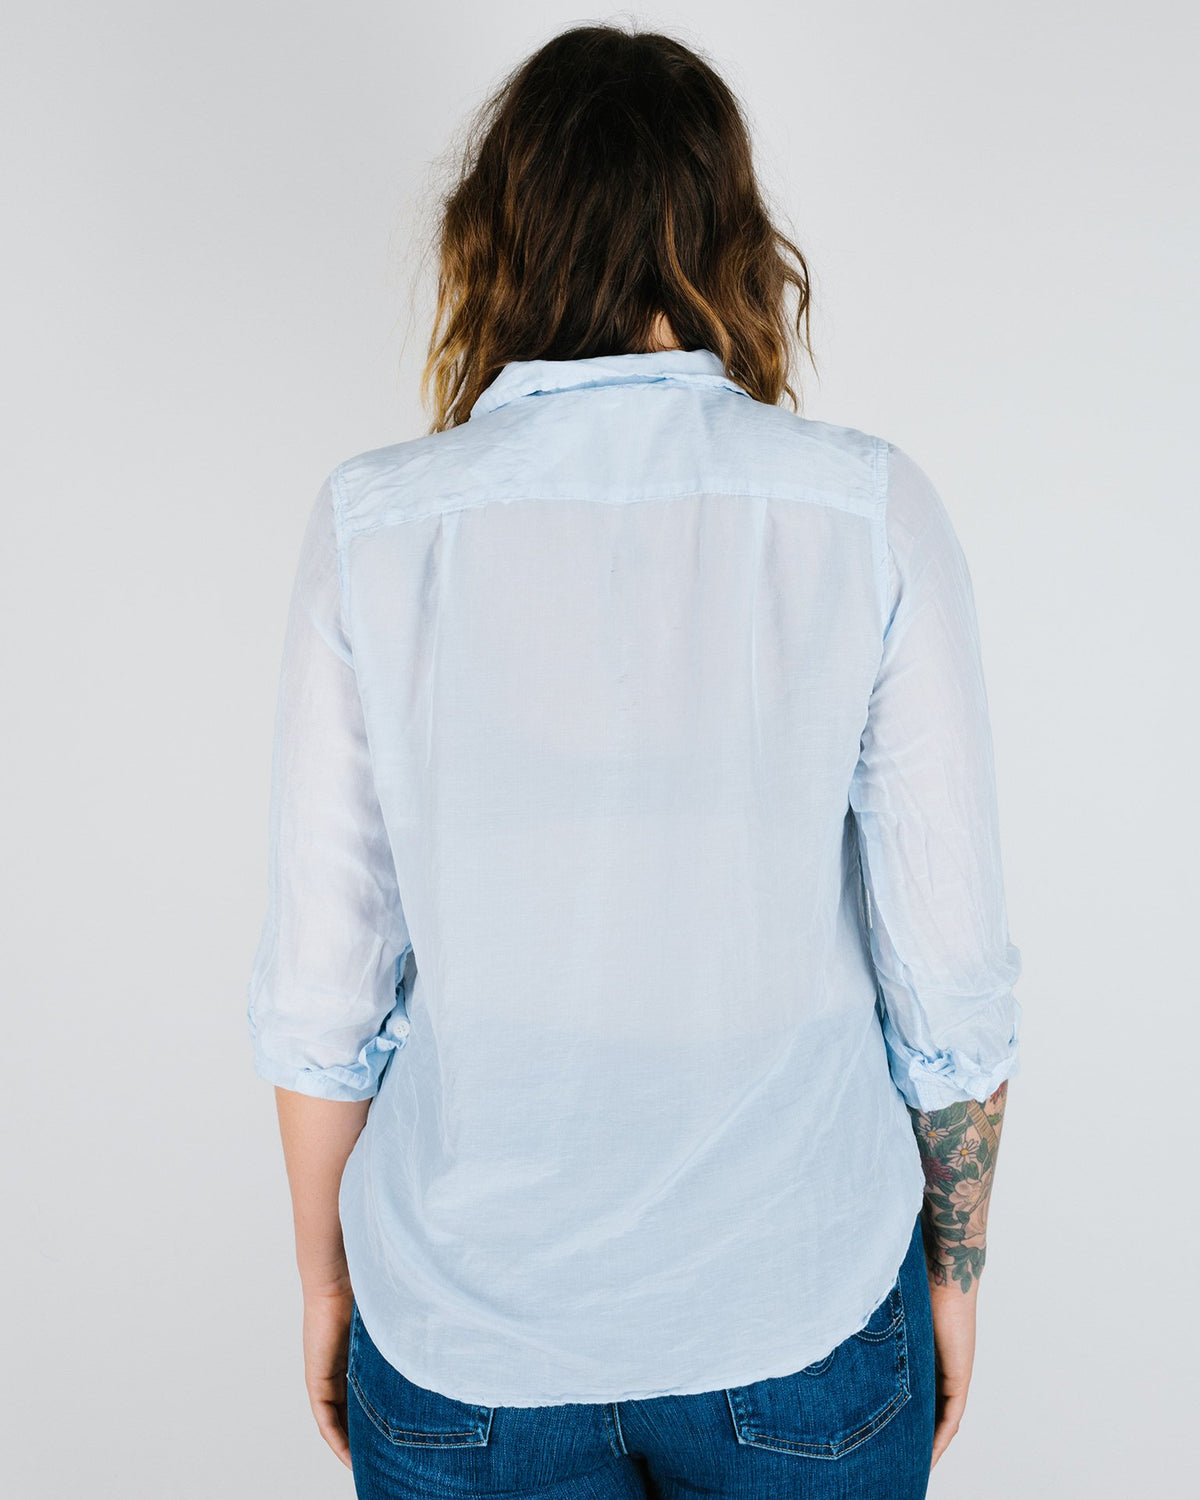 CP Shades Clothing Eliza Blouse in Pond Cotton Silk